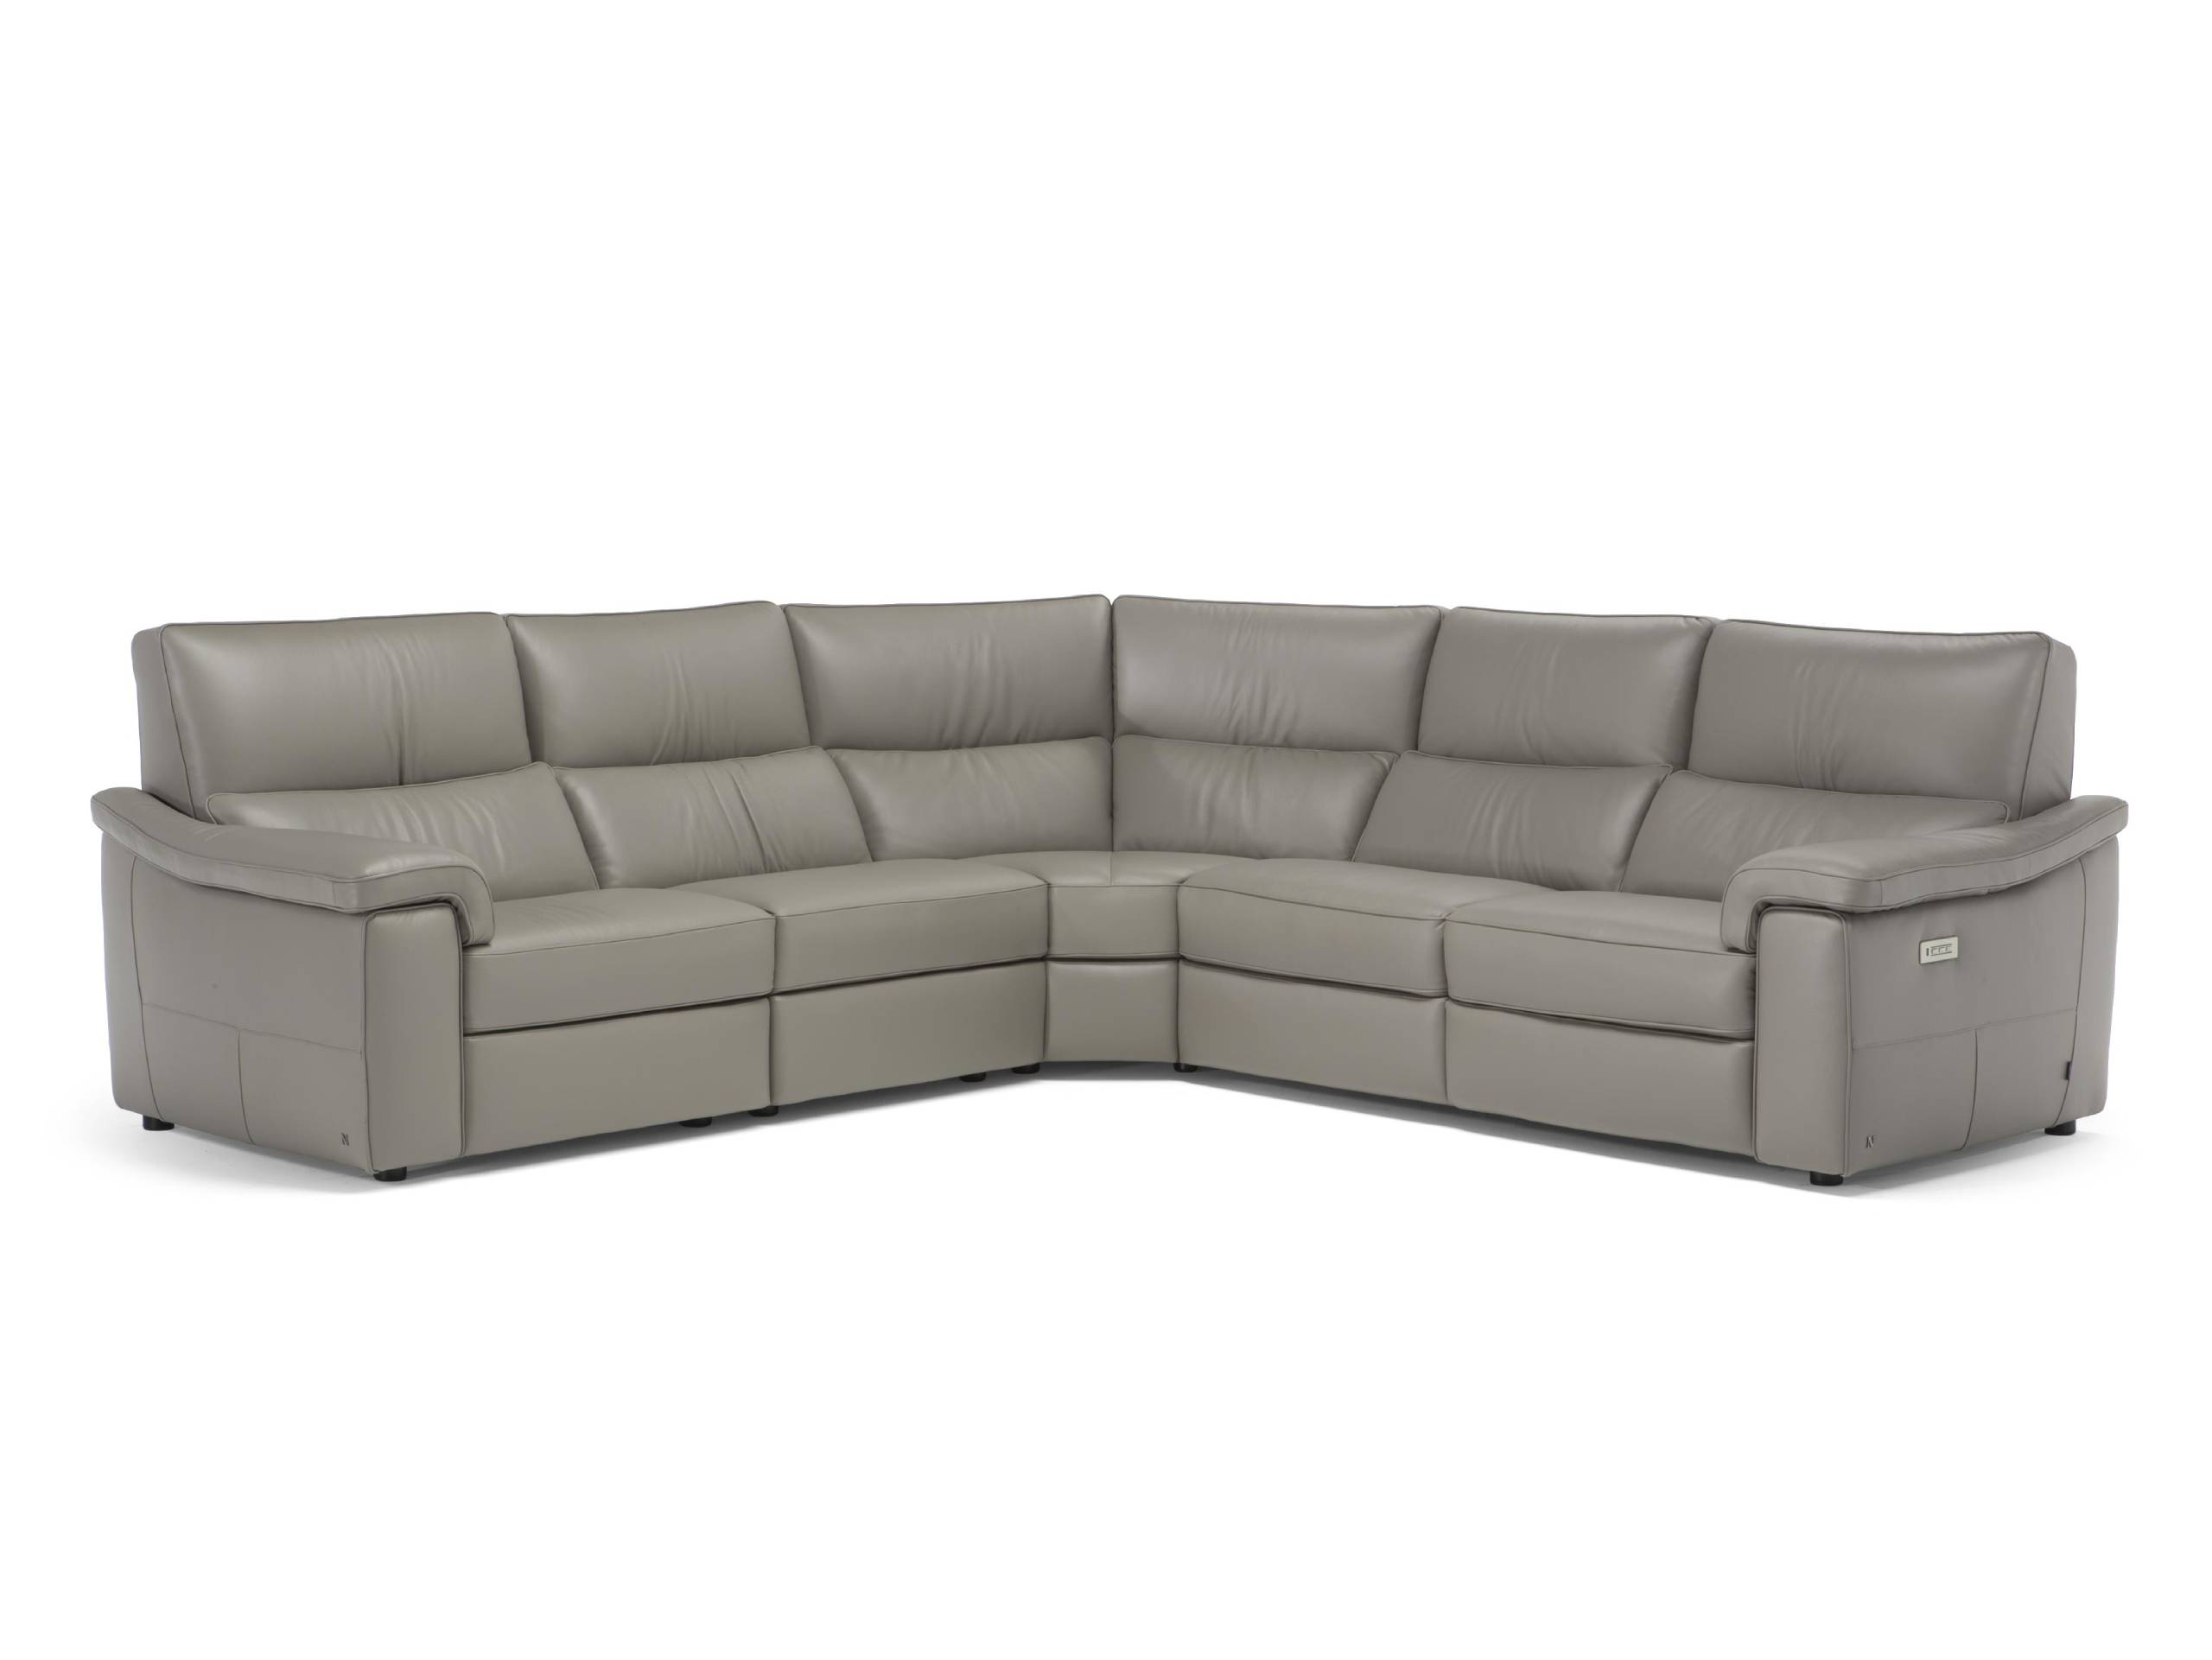 Natuzzi Italia Rock 3062 5-pc sectional with power recliners